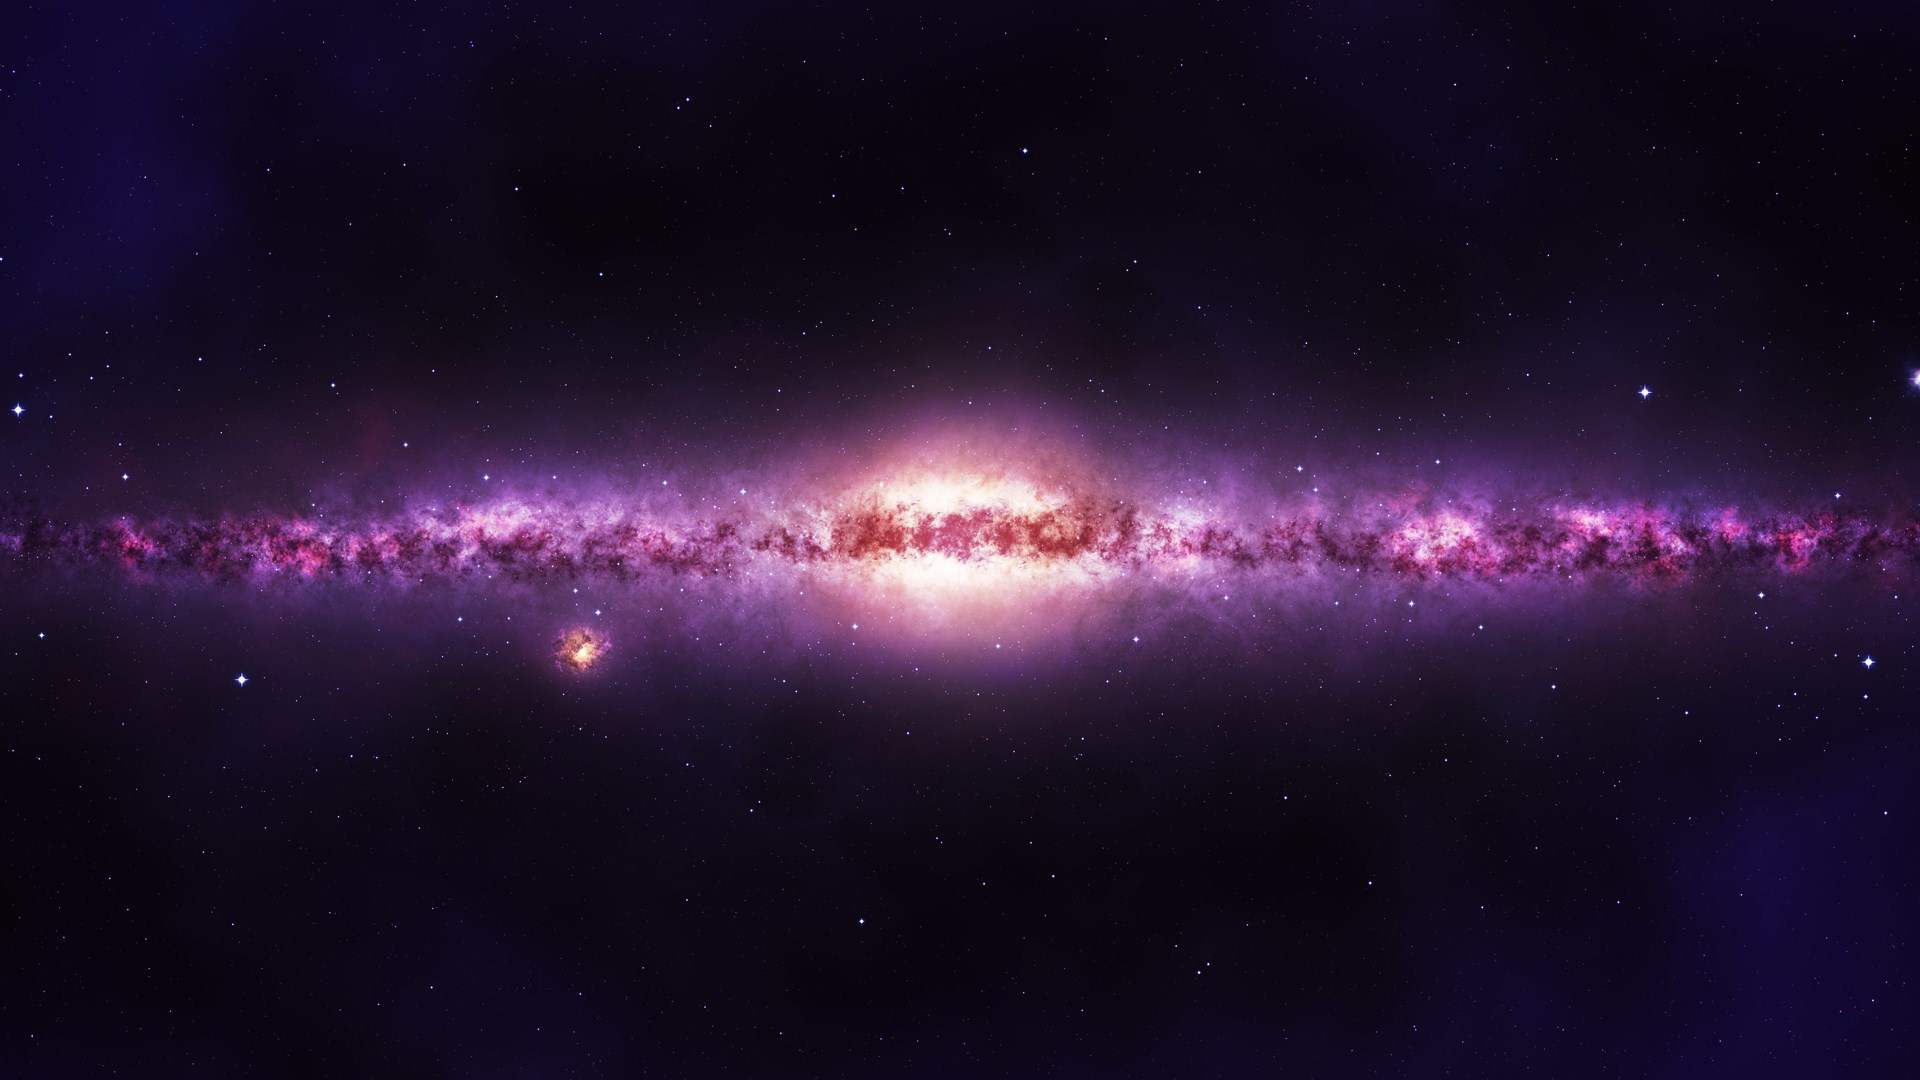 Galaxy Stars Purple Wallpaper 1920x1080